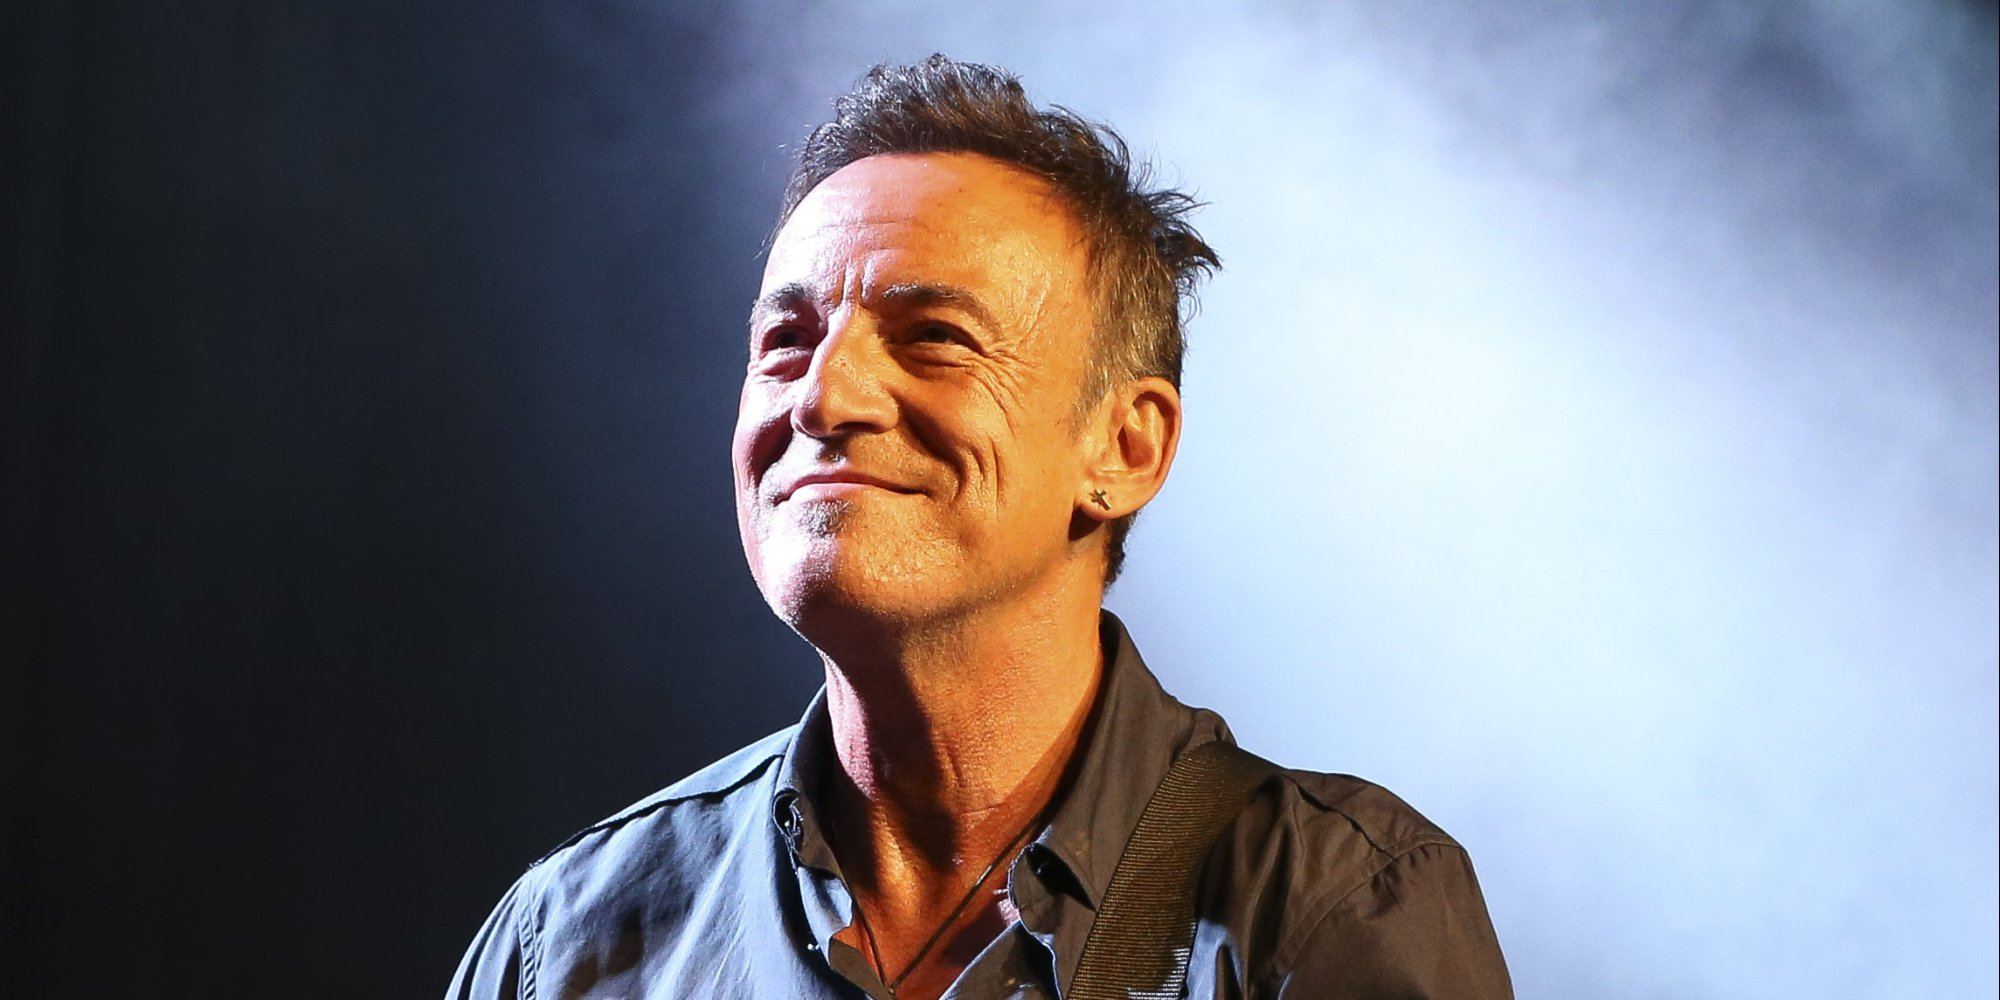 bruce-springsteen-rumor-tour-2016-the-river